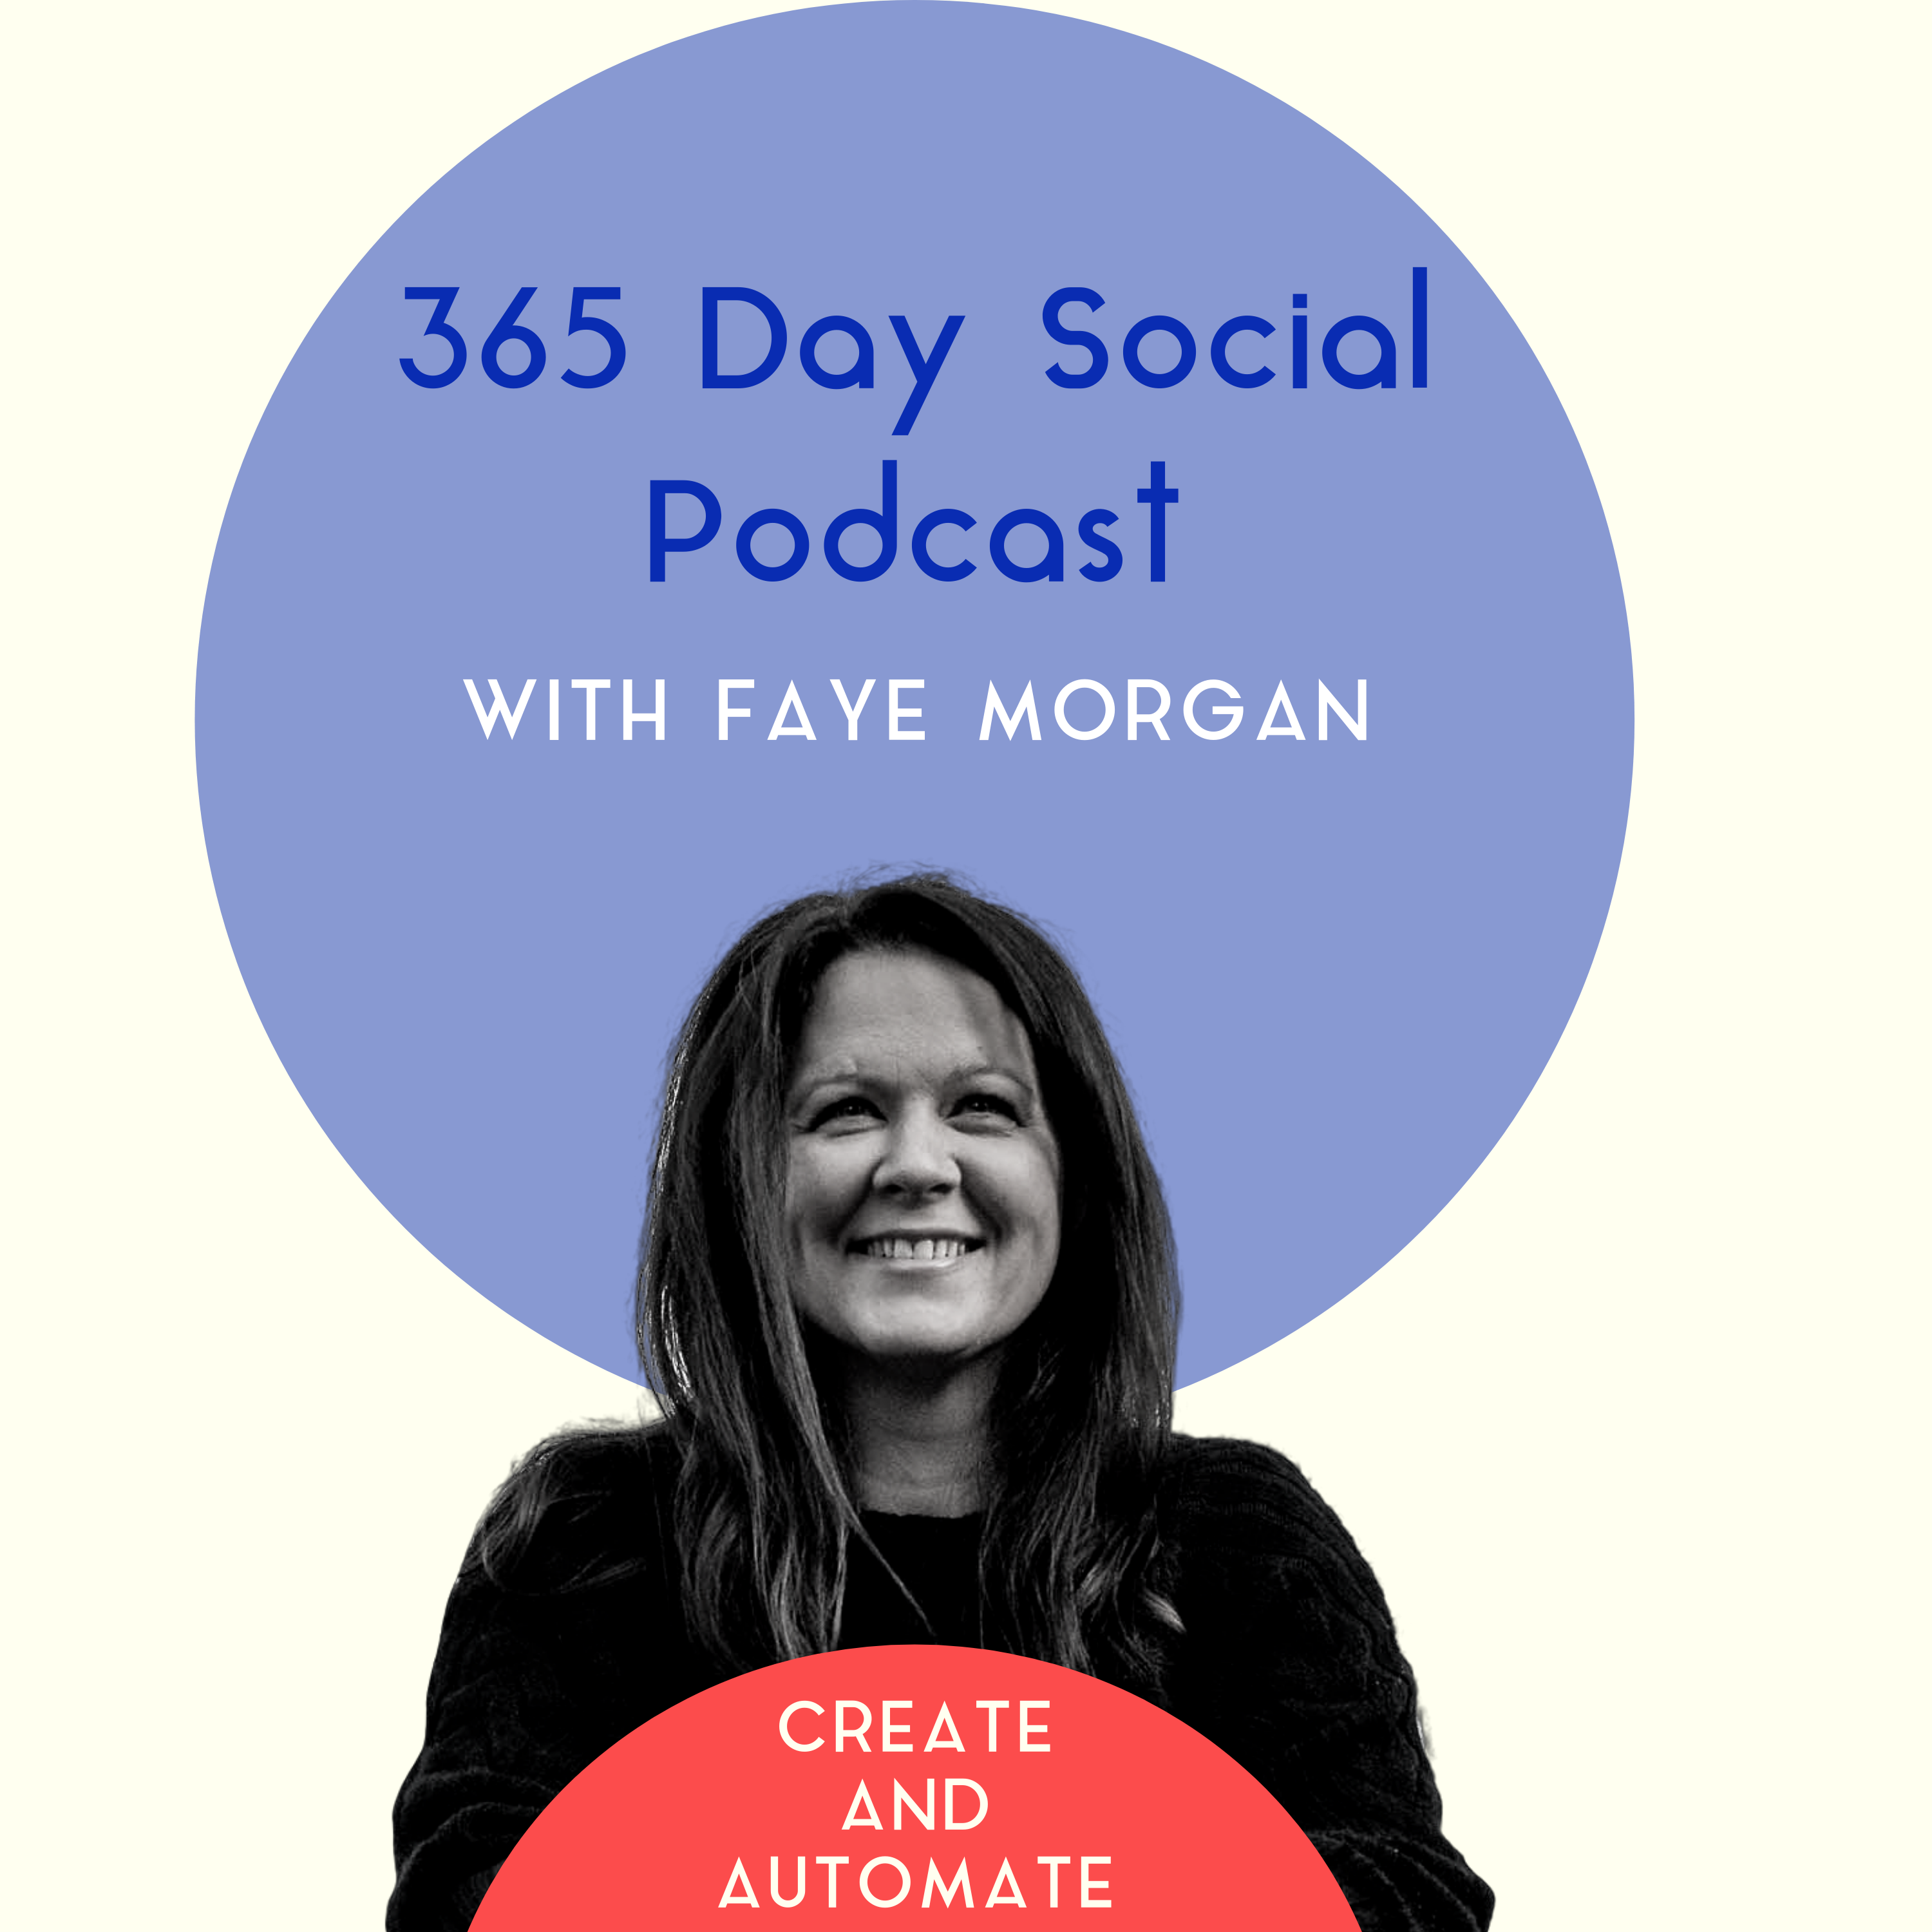 365 Day Social: Create and Automate Podcast podcast show image